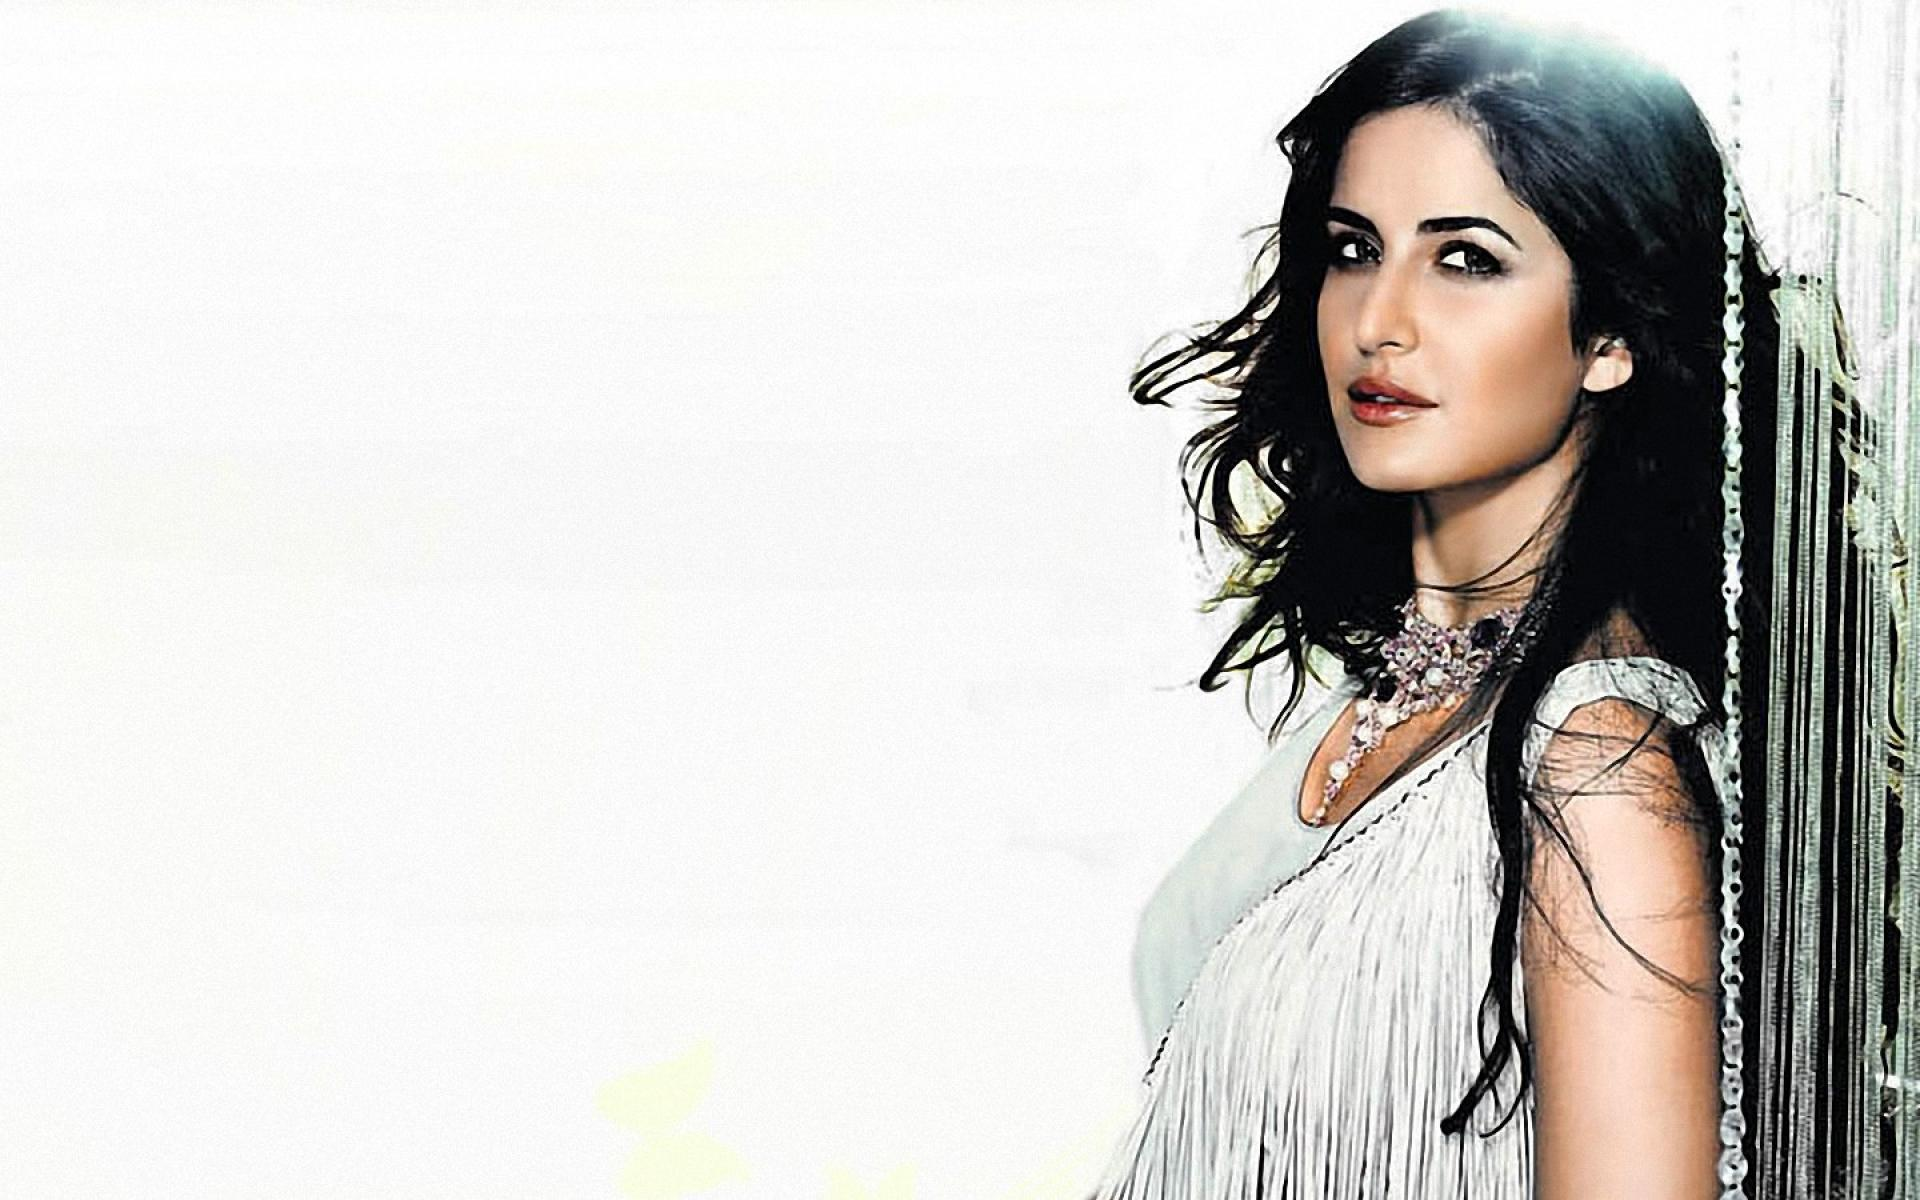 awesome pose of katrina kaif hd wallpaper | hd latest wallpapers